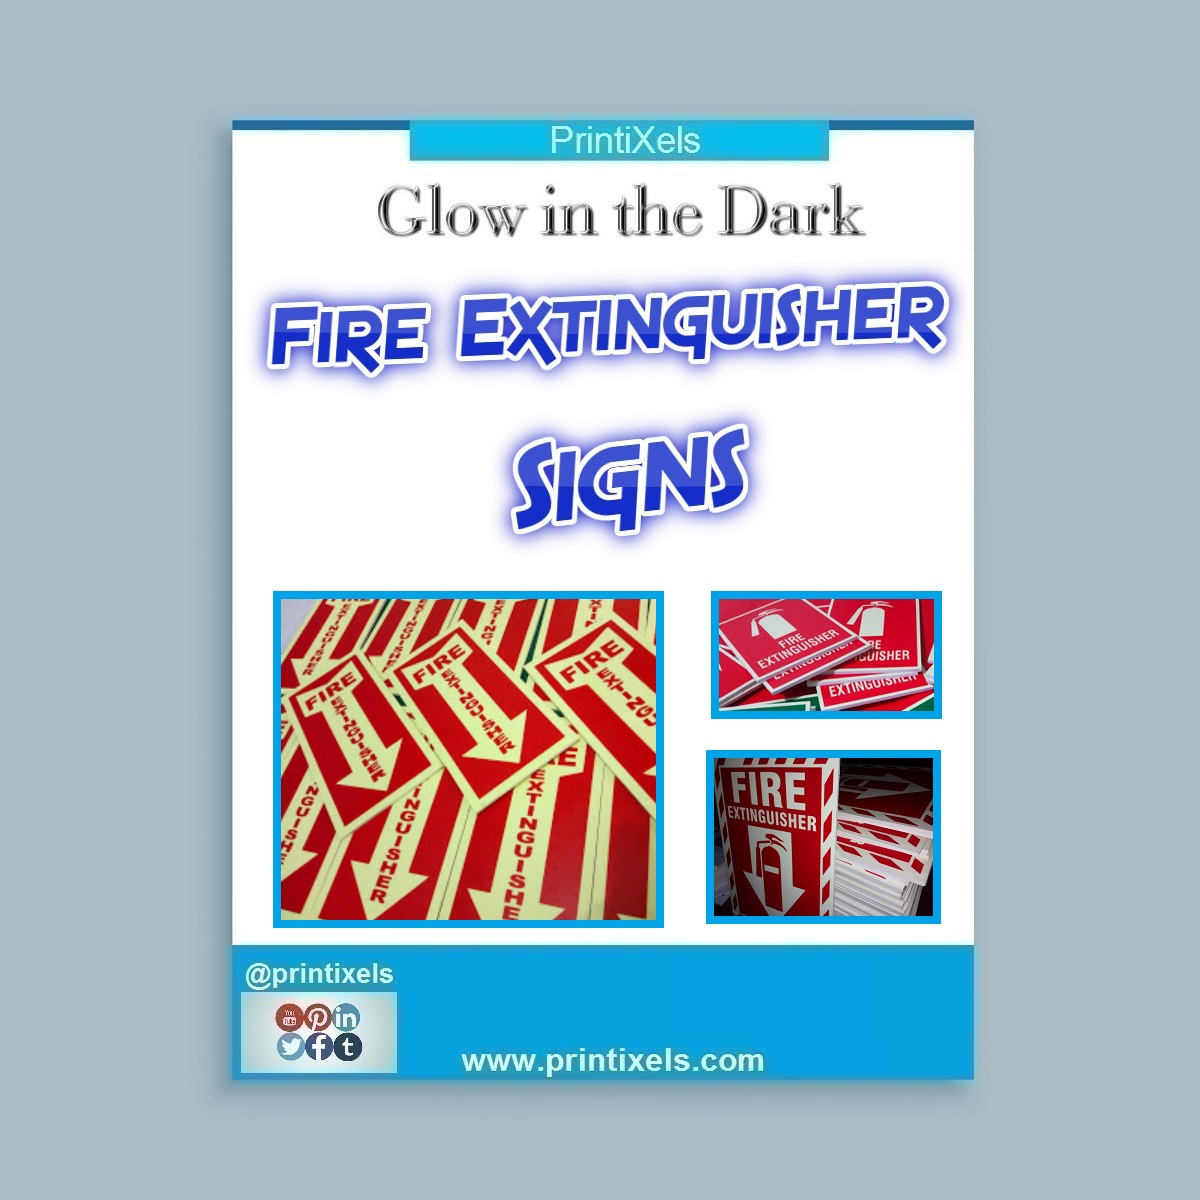 Glow in the Dark Fire Extinguisher Signs Philippines